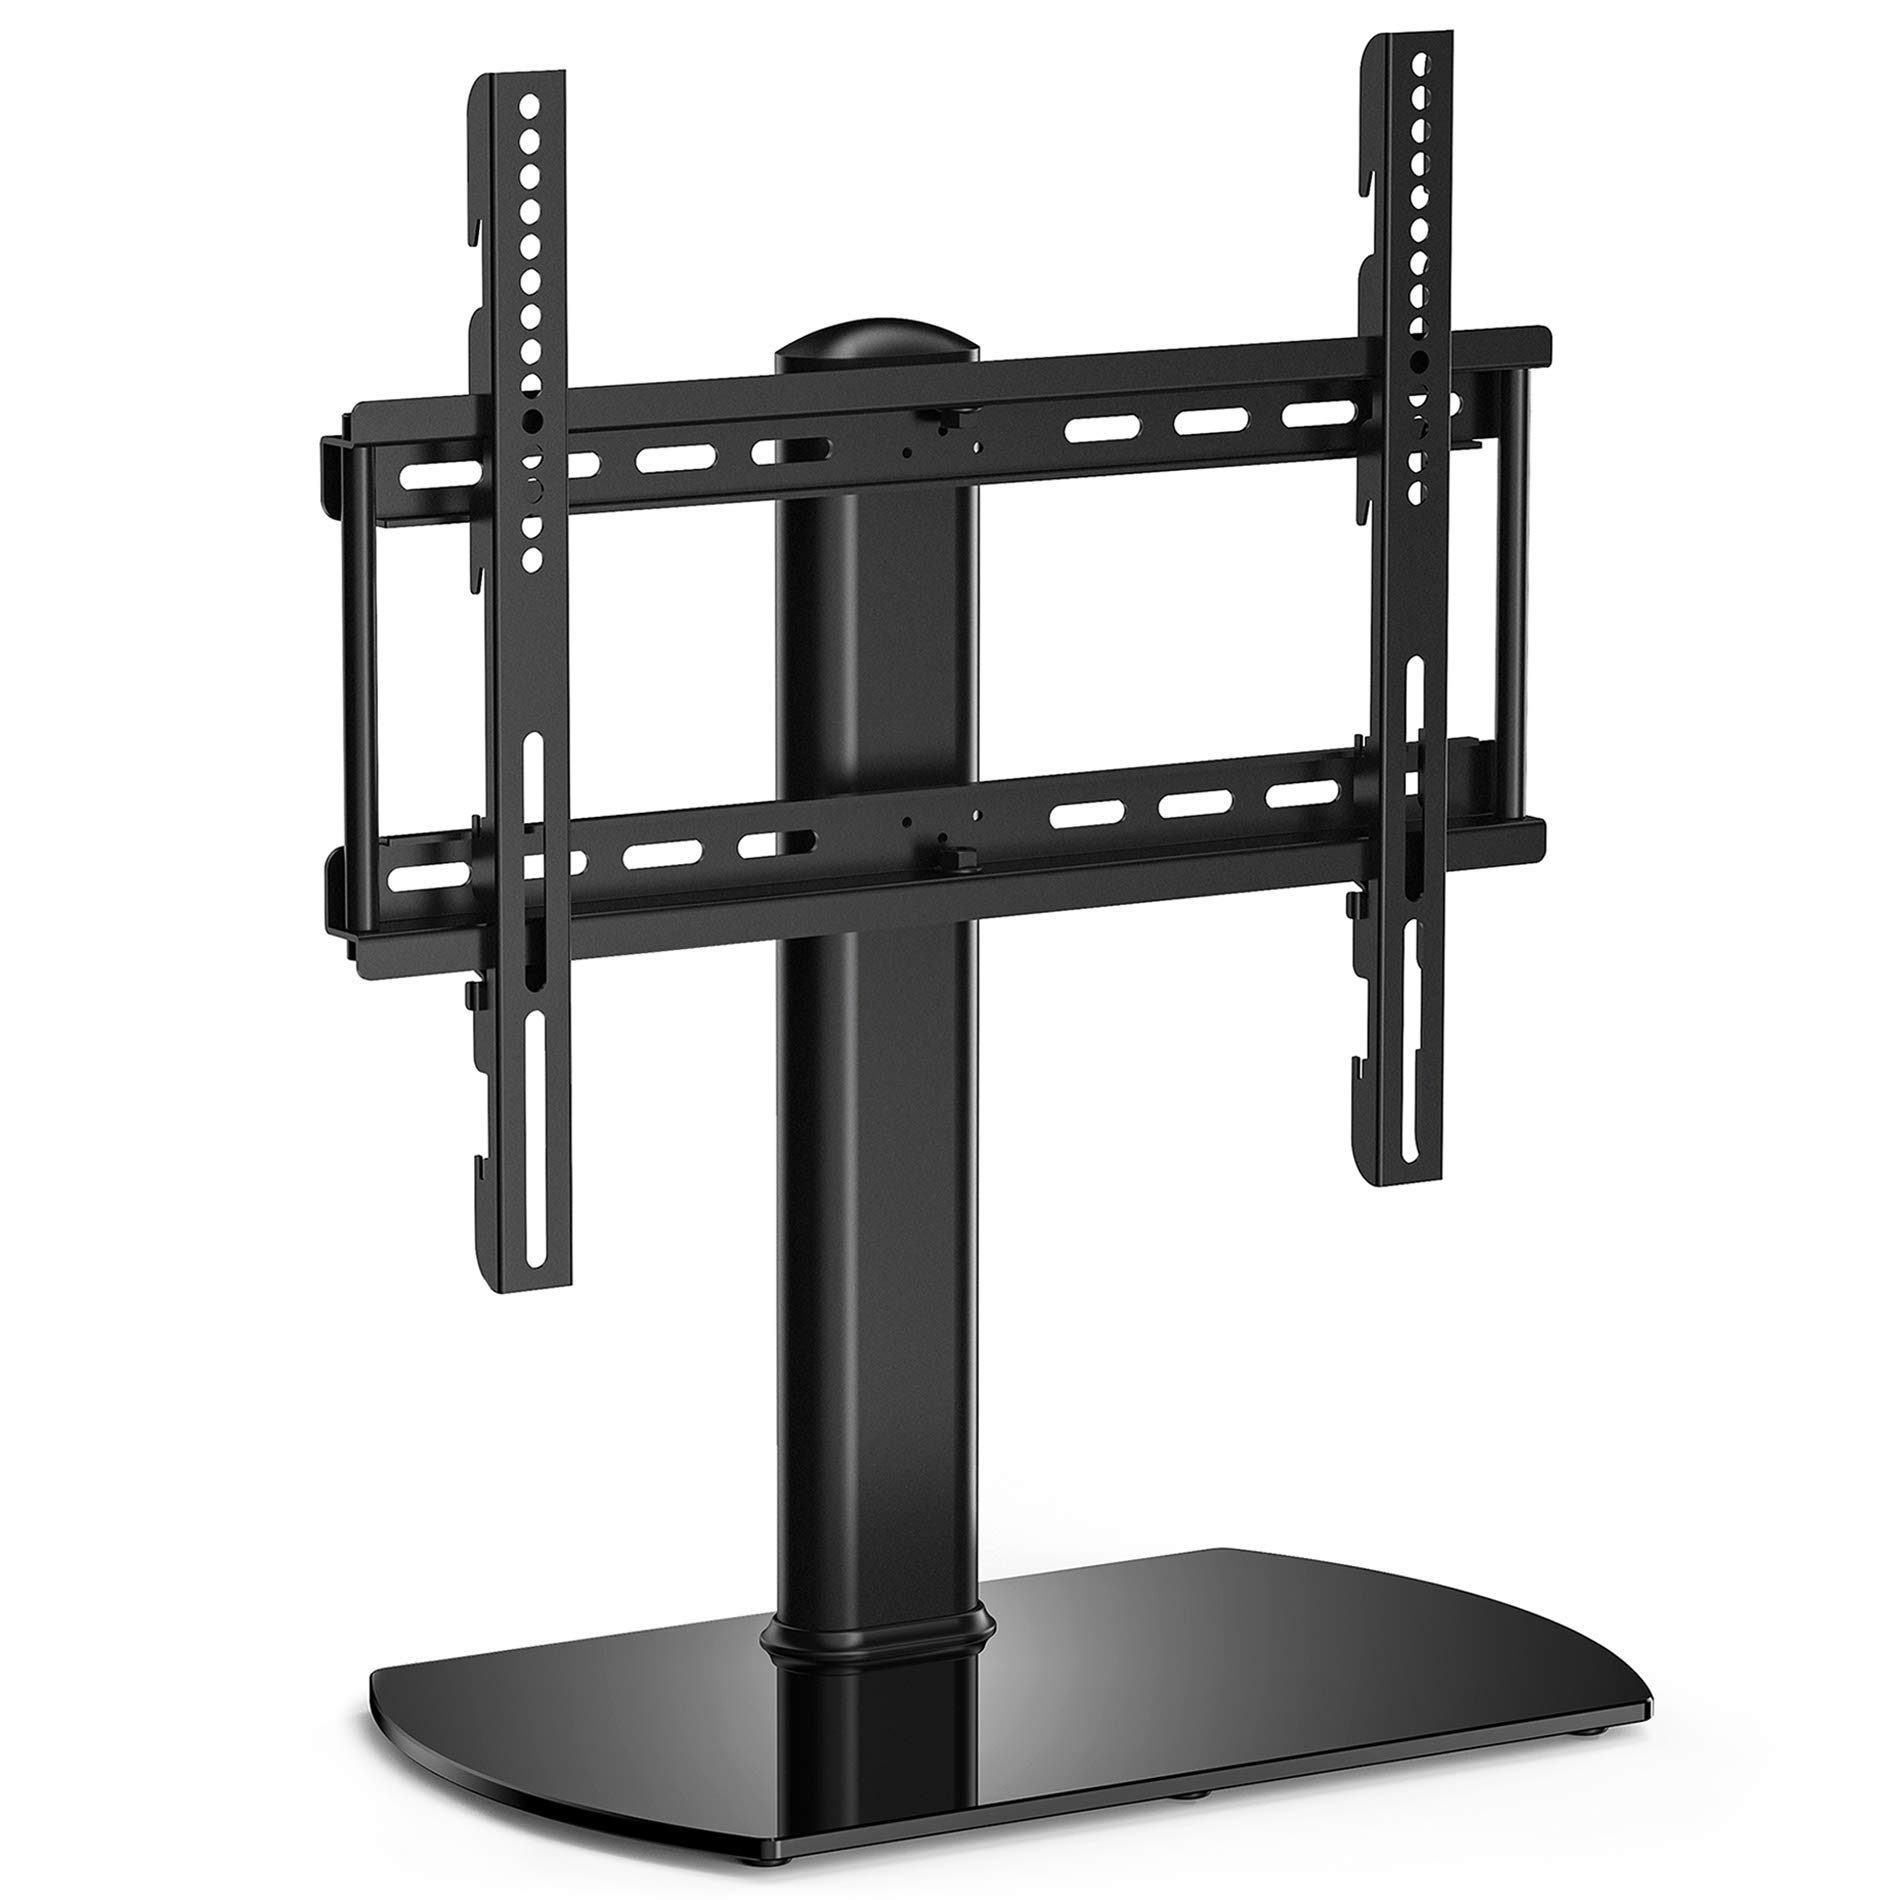 FITUEYES Universal TV Stand Base Swivel Tabletop TV Stand with Mount for 32 inch to 50 inch Flat Screen Tvs/Xbox One/tv Component/Vizio Tv (TT104501GB)